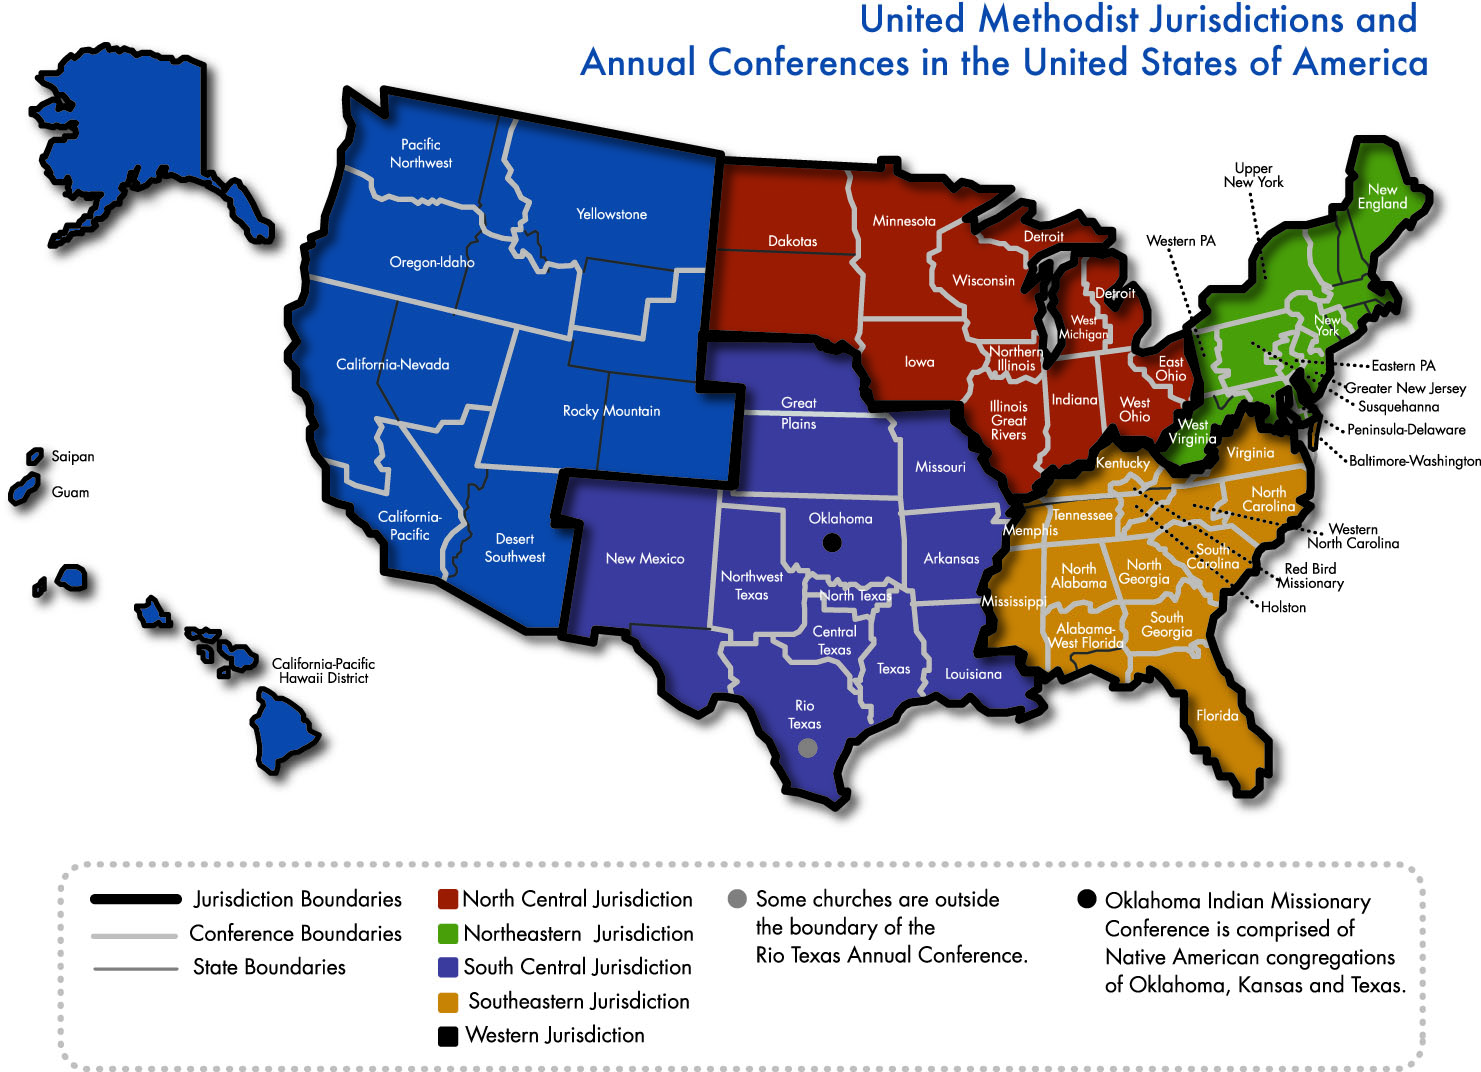 GC2016 Remaking the denominations map  The United Methodist Church